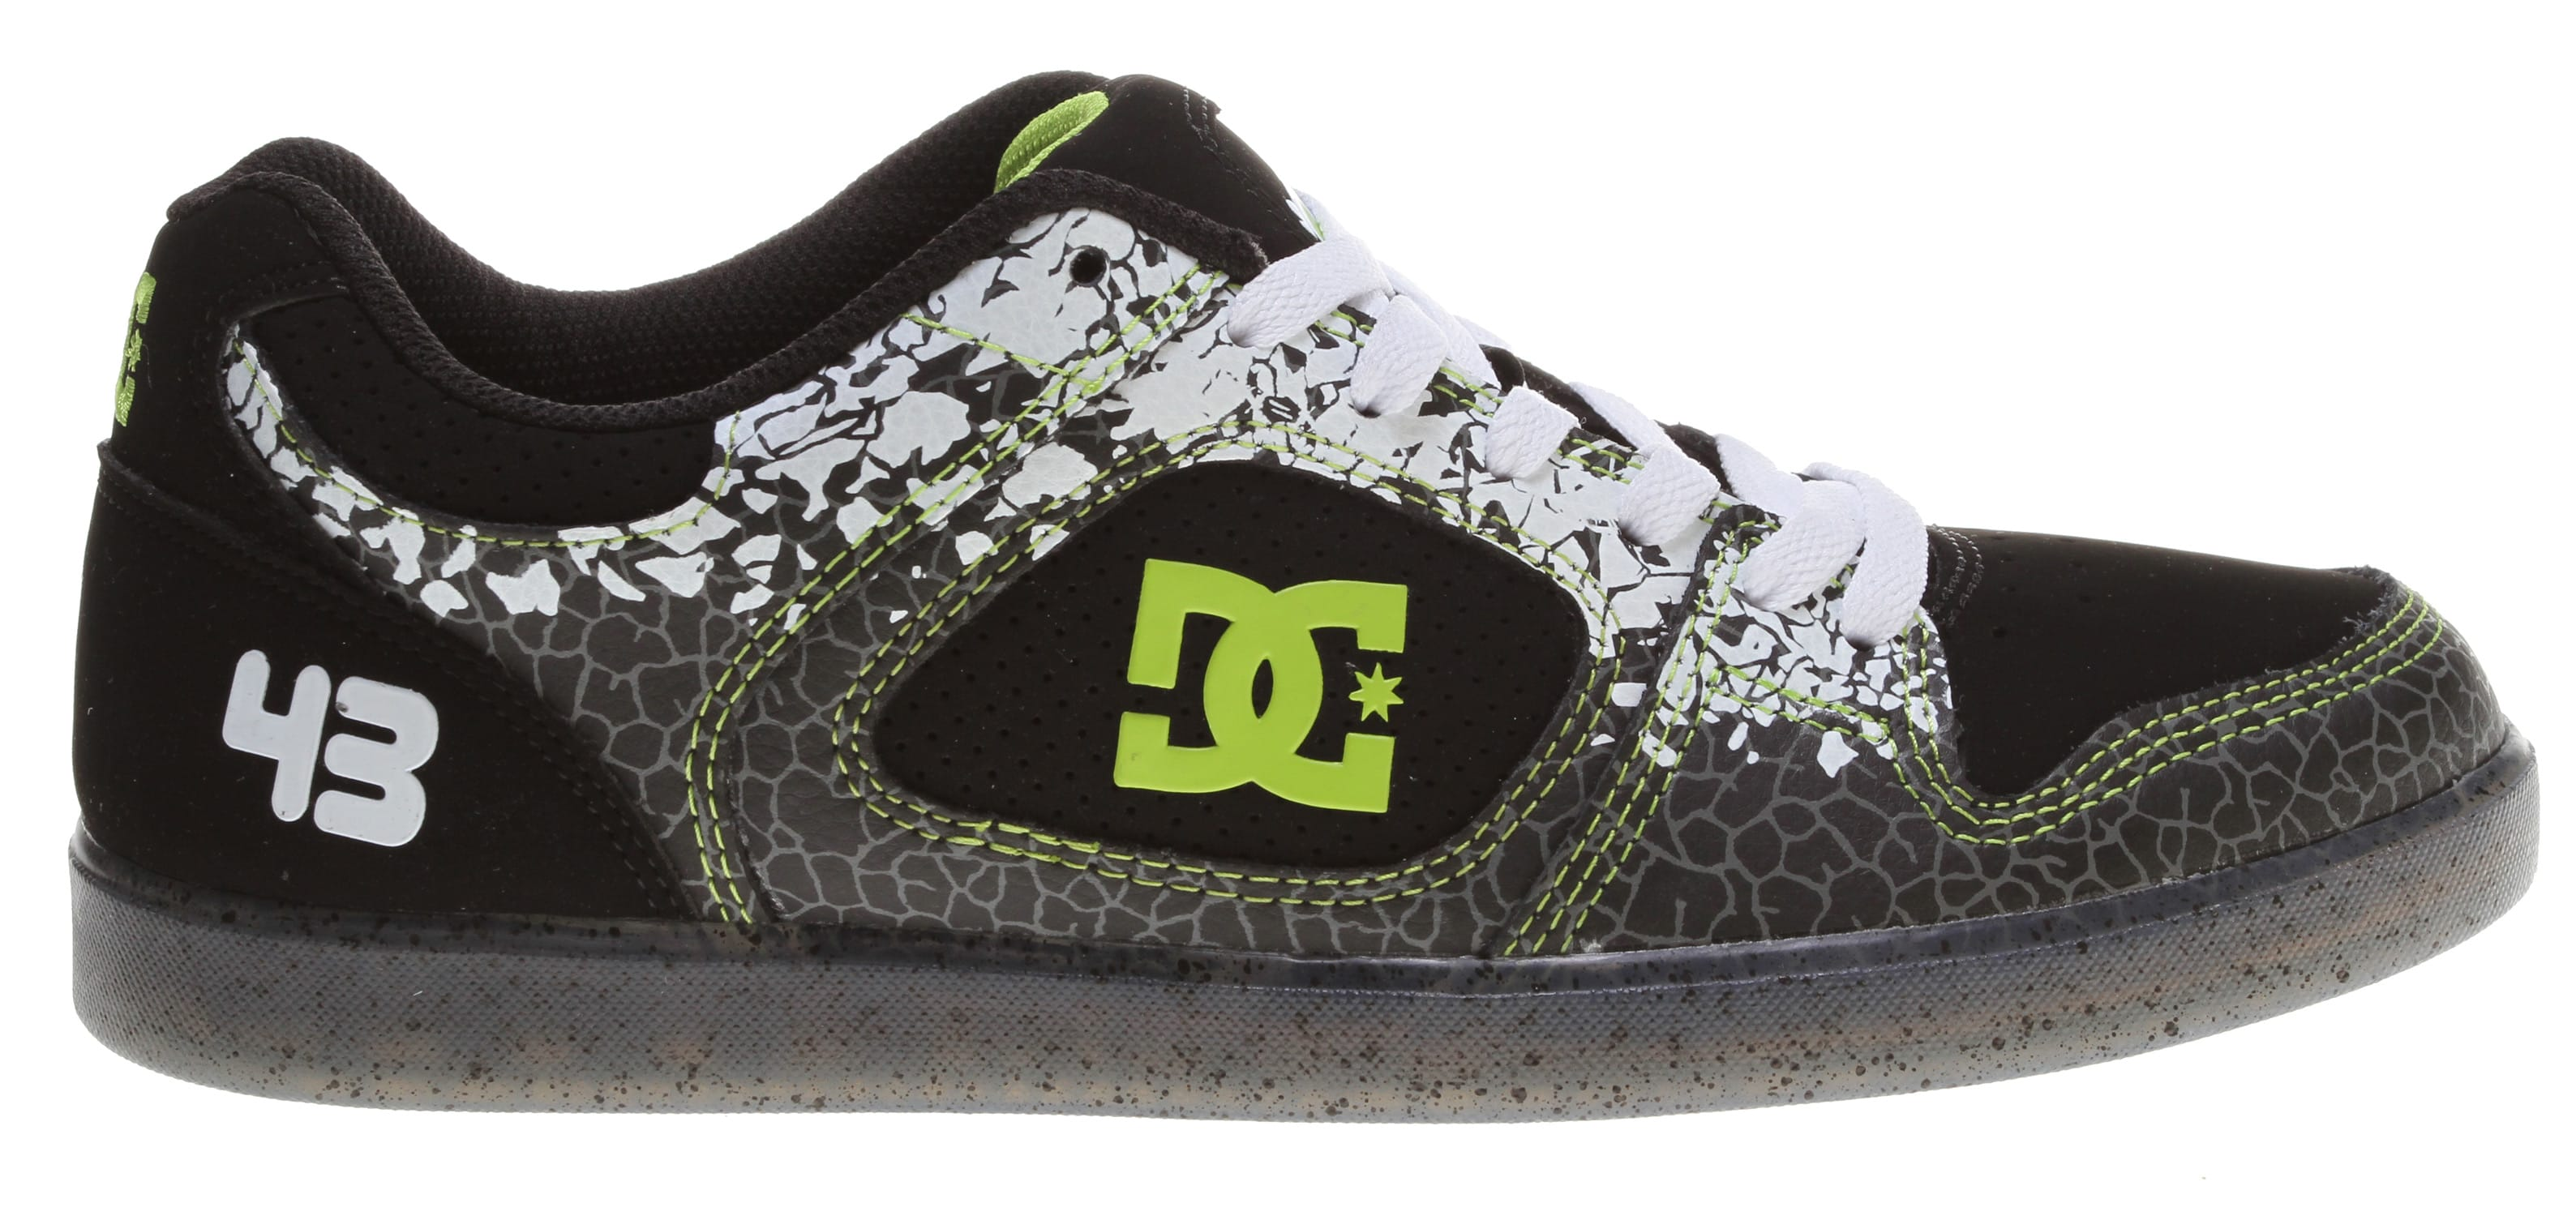 on sale dc ken block union se skate shoes up to 65 off. Black Bedroom Furniture Sets. Home Design Ideas